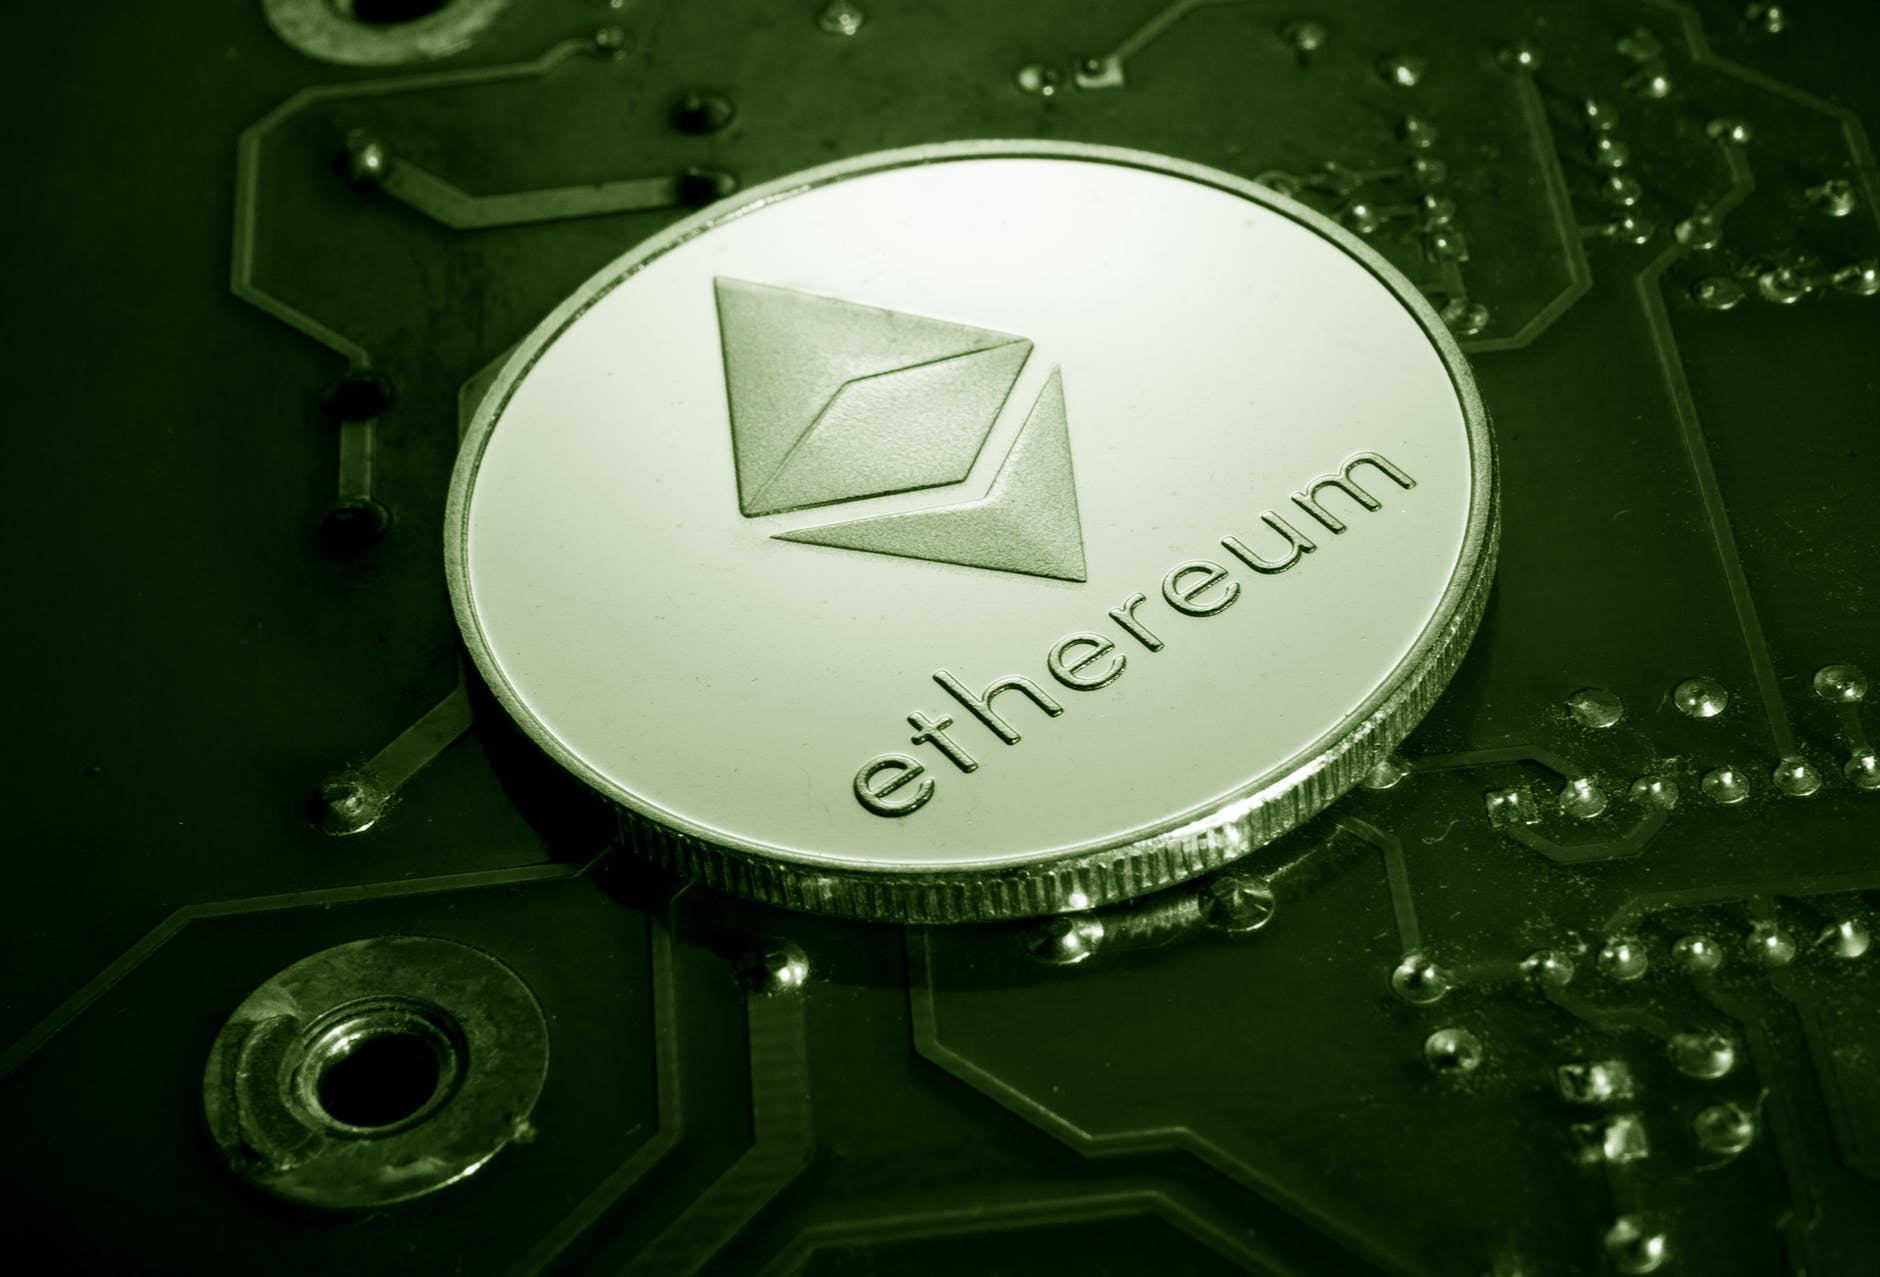 https://ambcrypto.com/buterin-says-the-big-difference-between-ethereum-and-bitcoin-is/